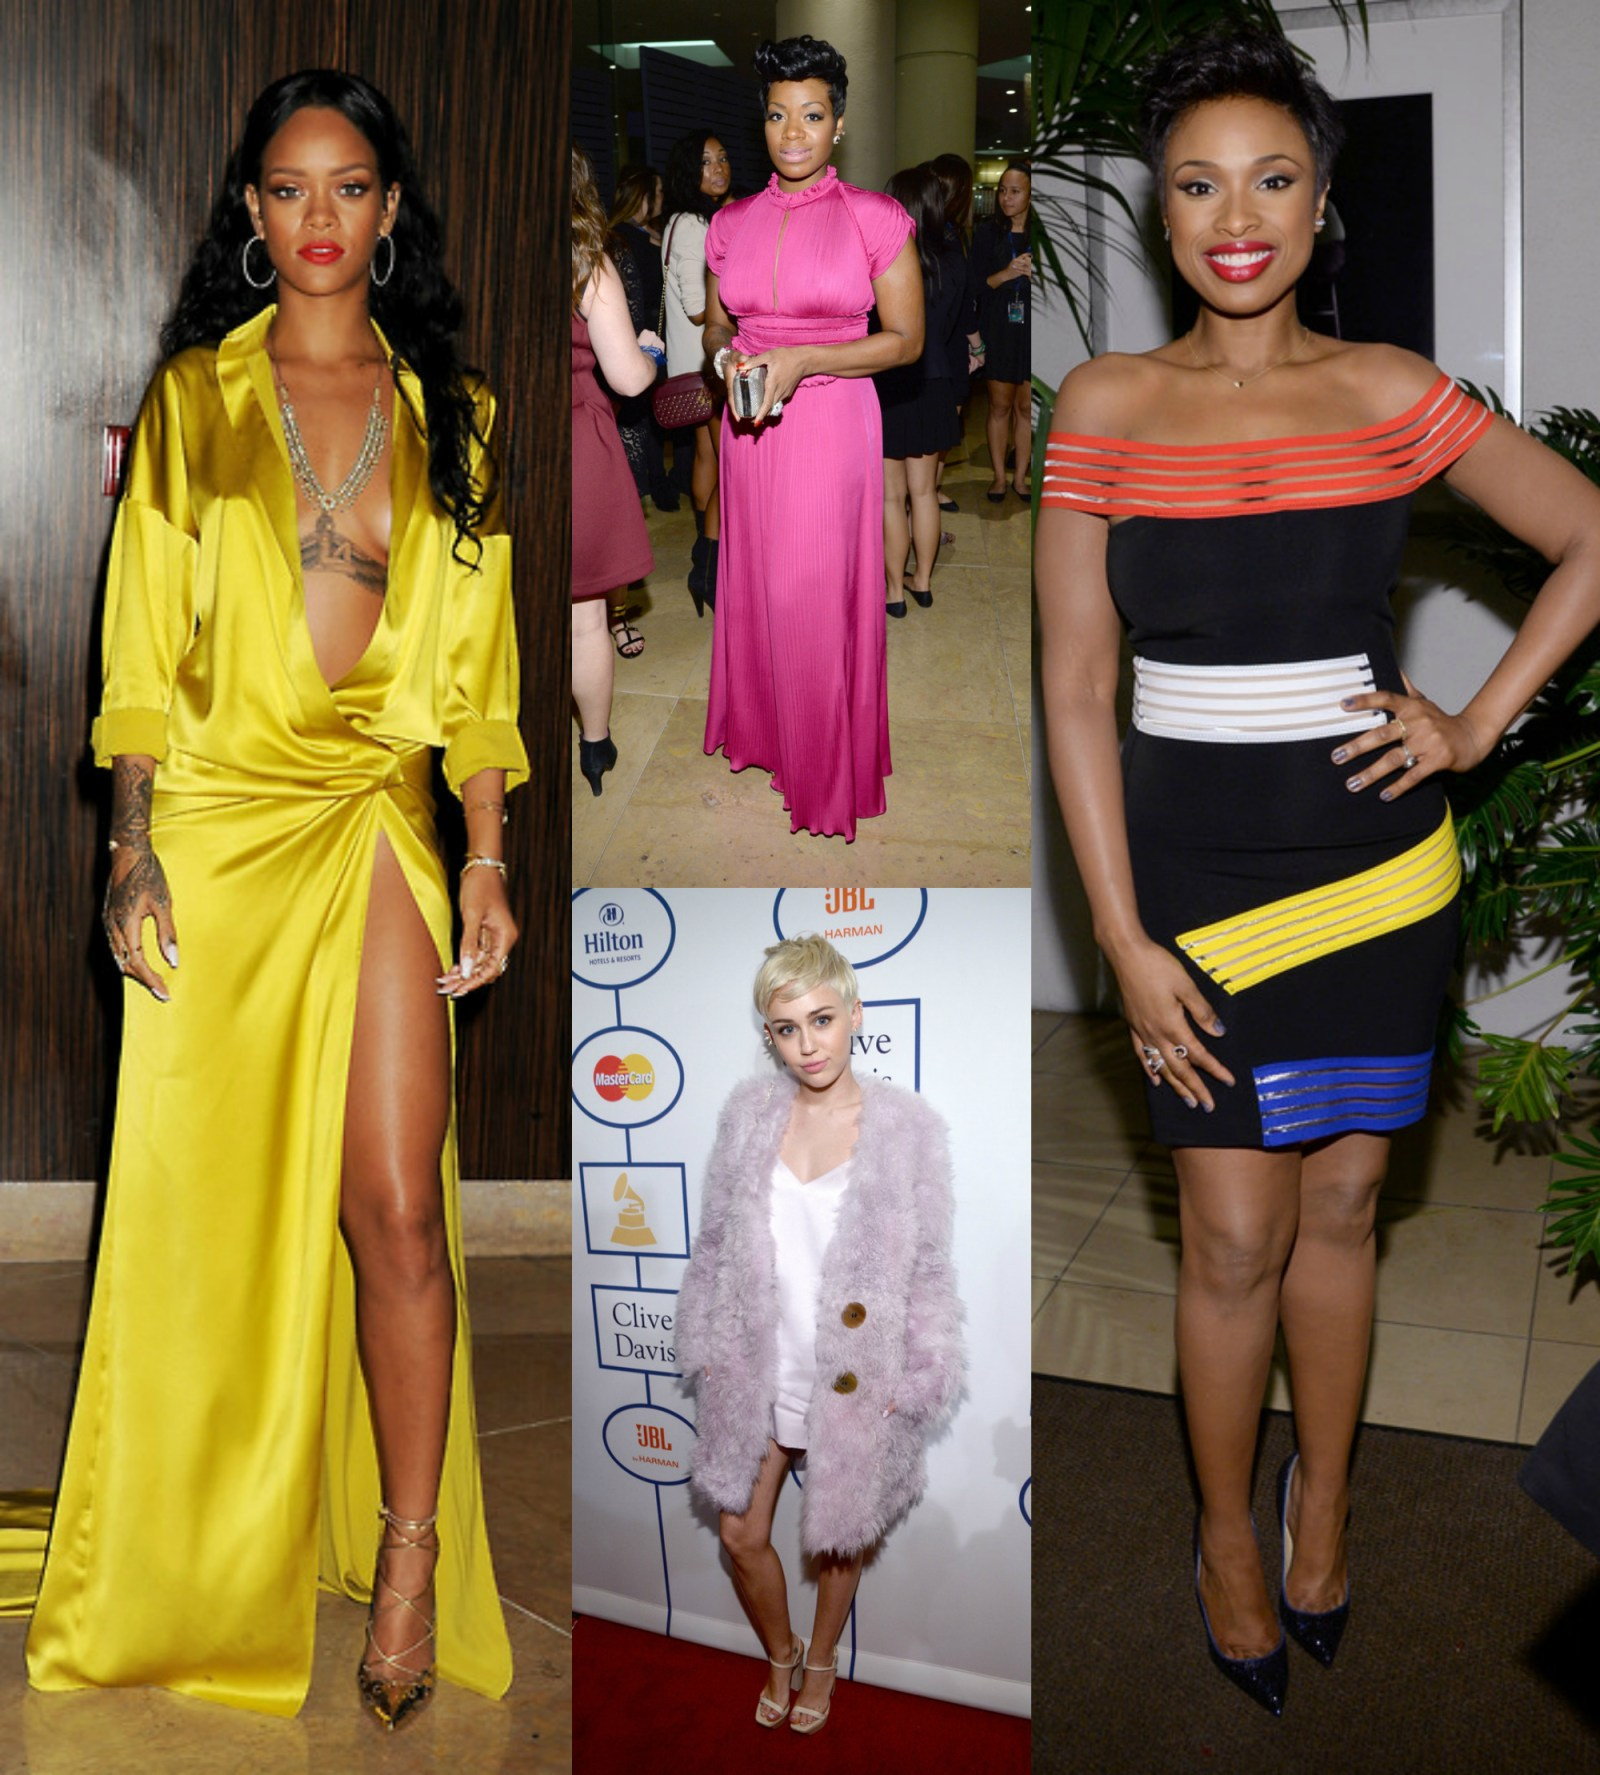 rihanna, miley cyrus, fantasia, jennifer hudson, chrissy teigen at 56th GRAMMY Awards Pre-GRAMMY Gala